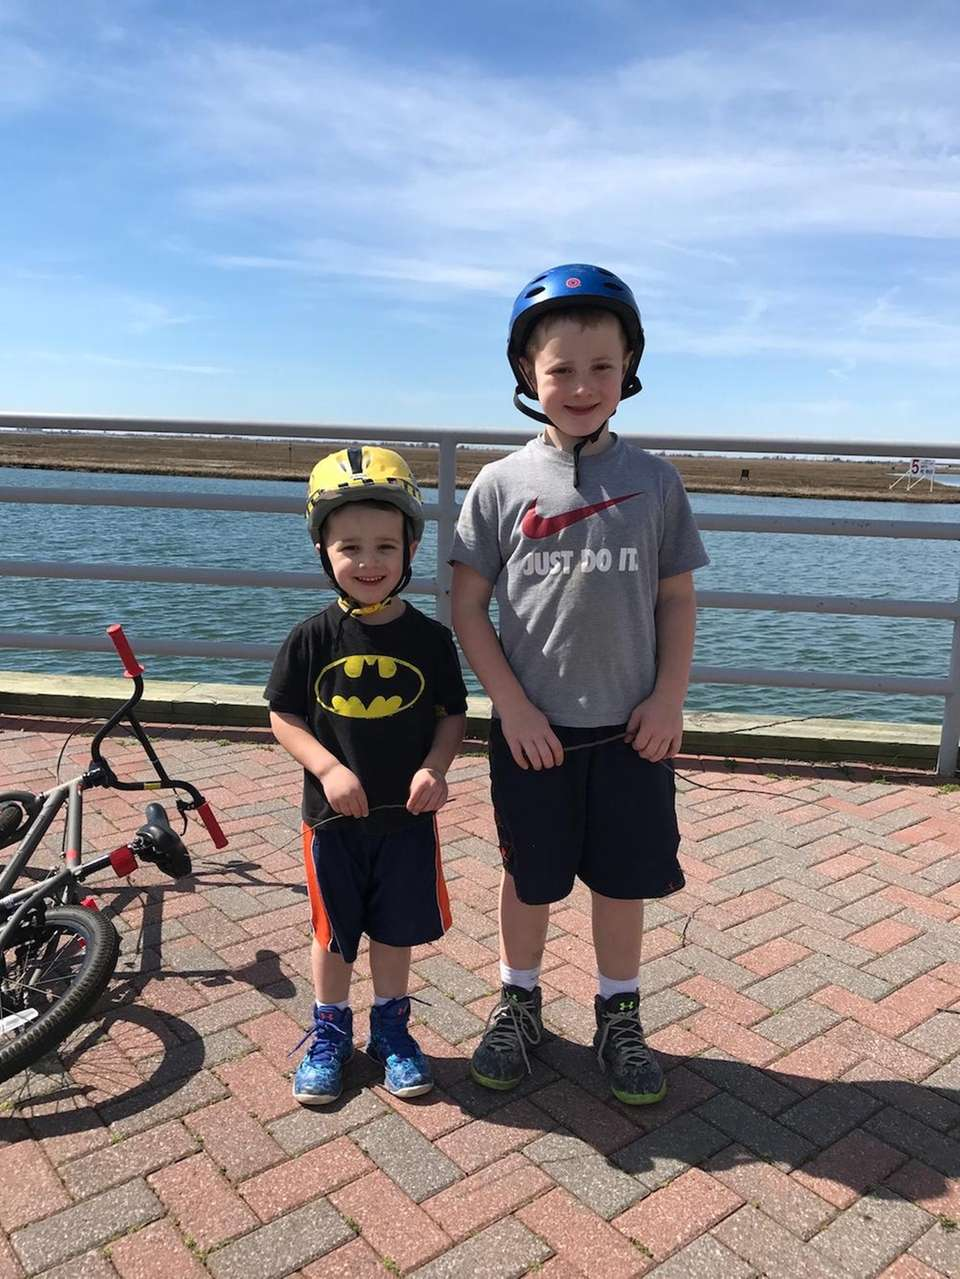 Jack and Joseph riding bikes at Seamans Neck